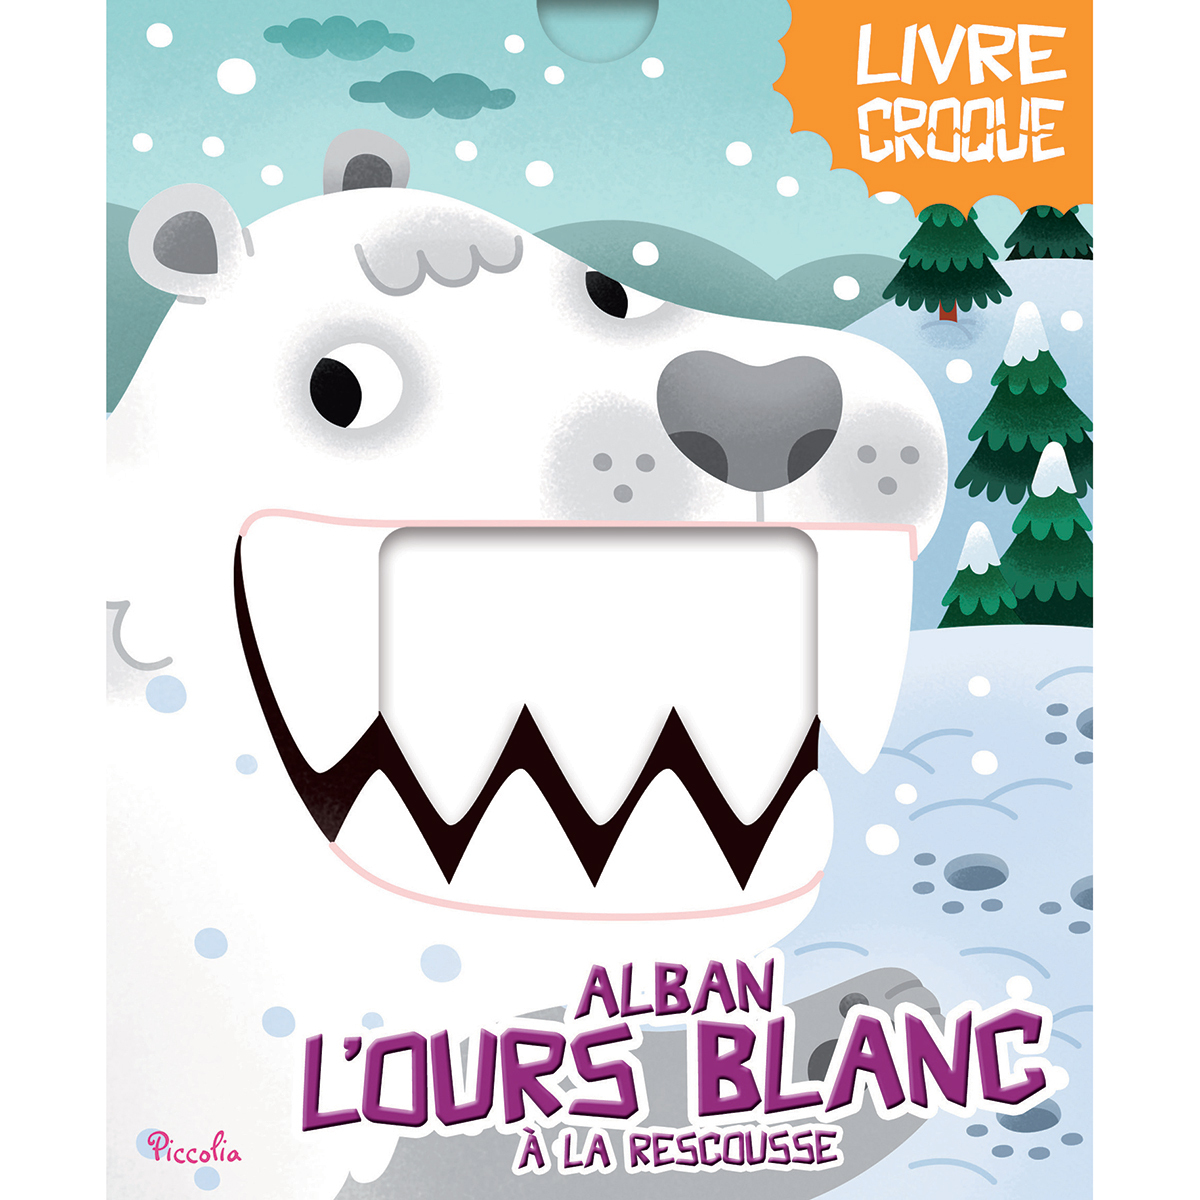 Livre & Carte Alban l'Ours Blanc Alban l'Ours Blanc